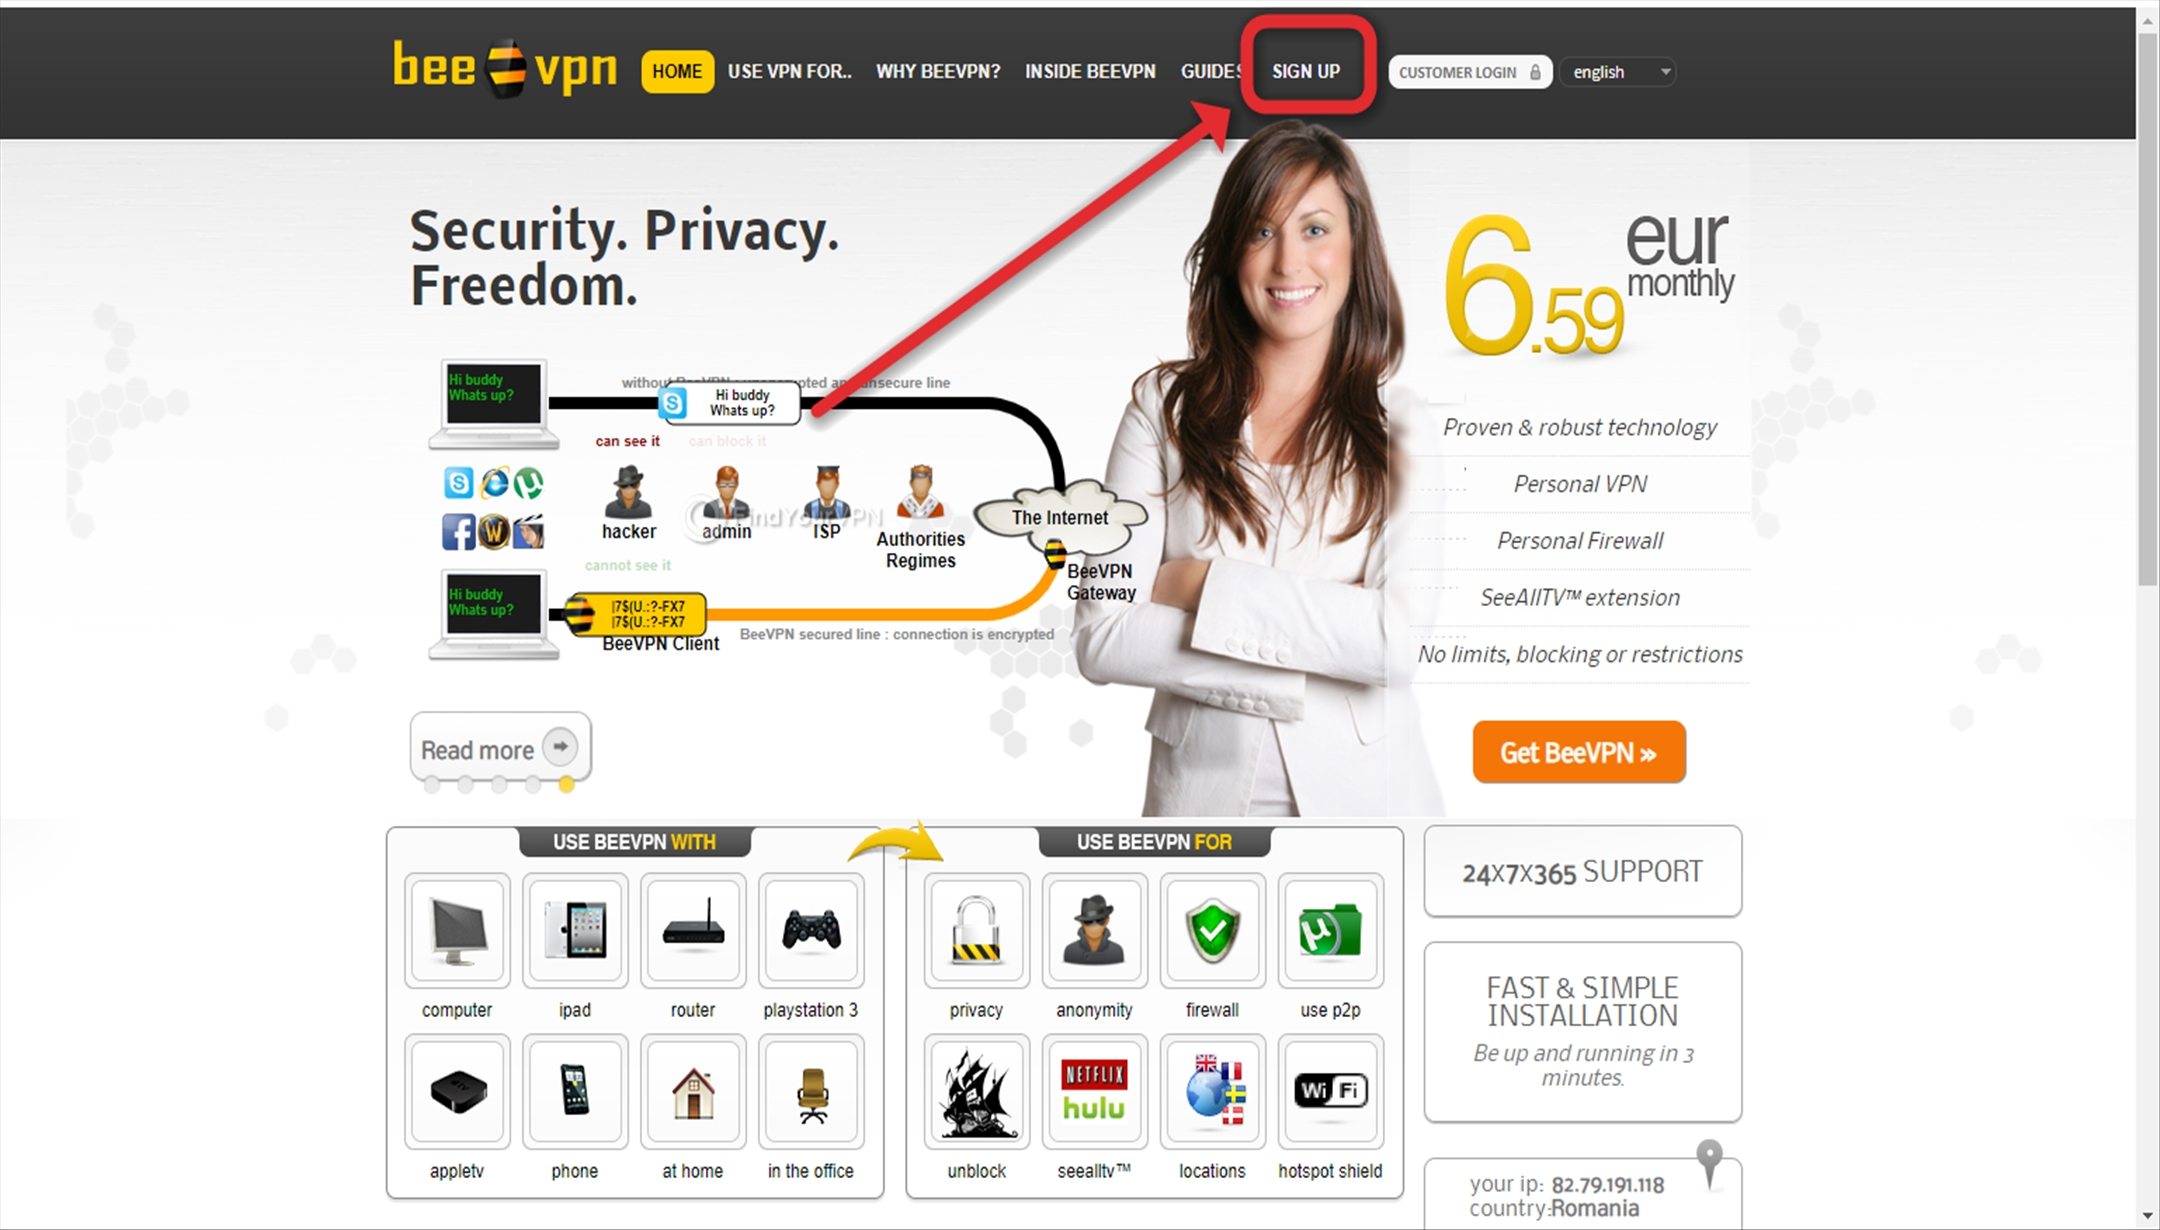 The Sign Up button on the BeeVPN website